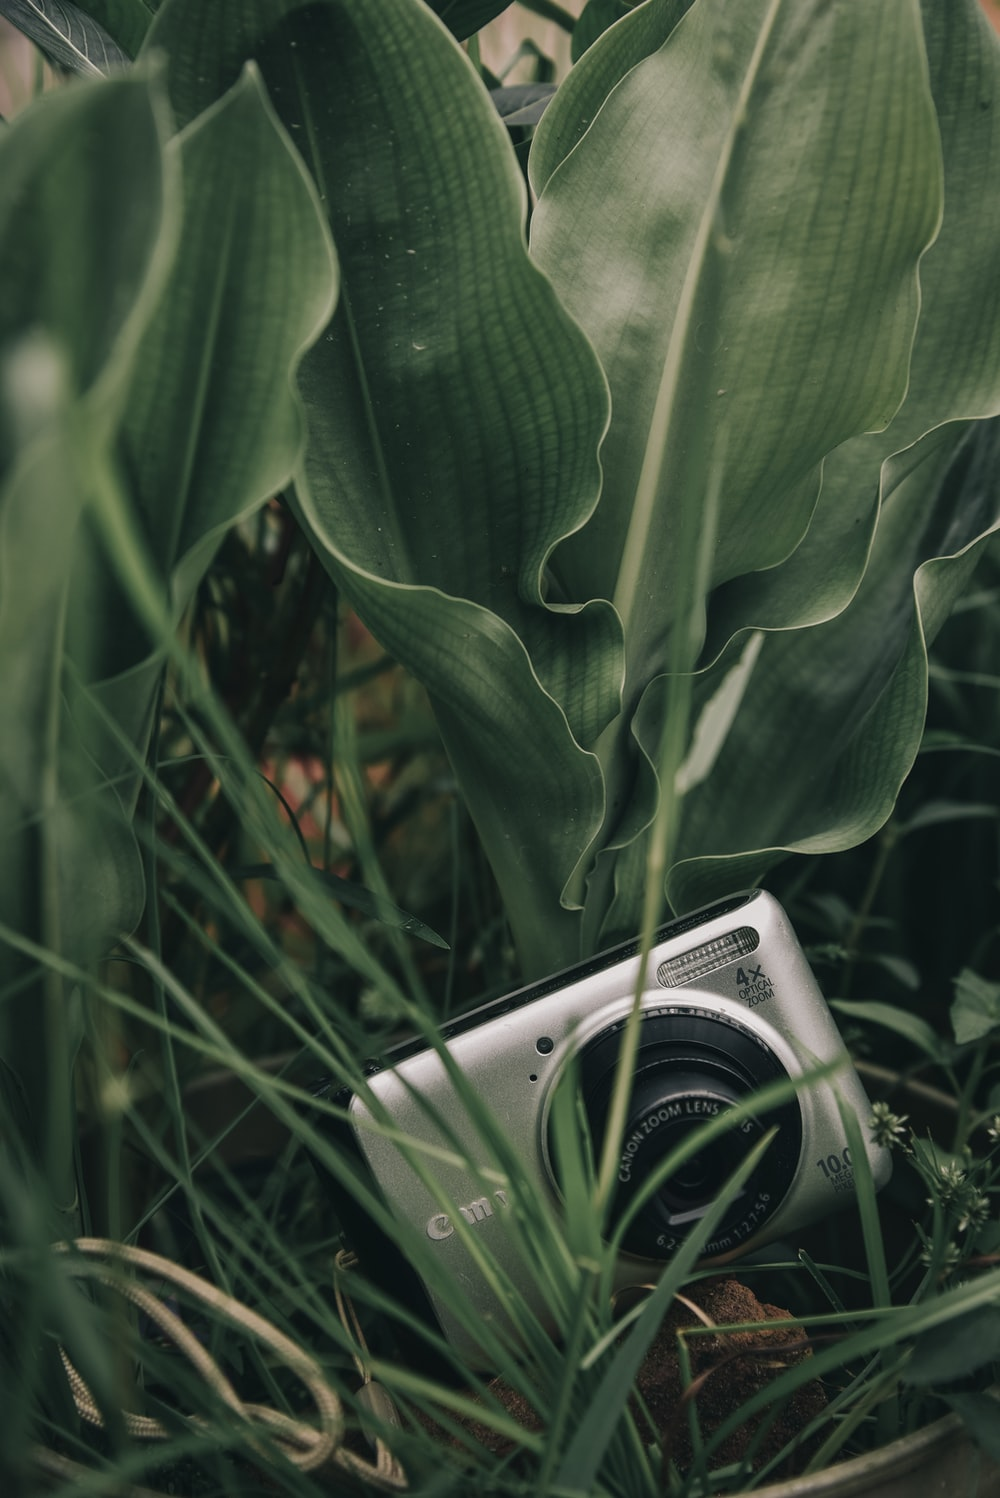 silver point-and-shoot camera on grass beside leaves